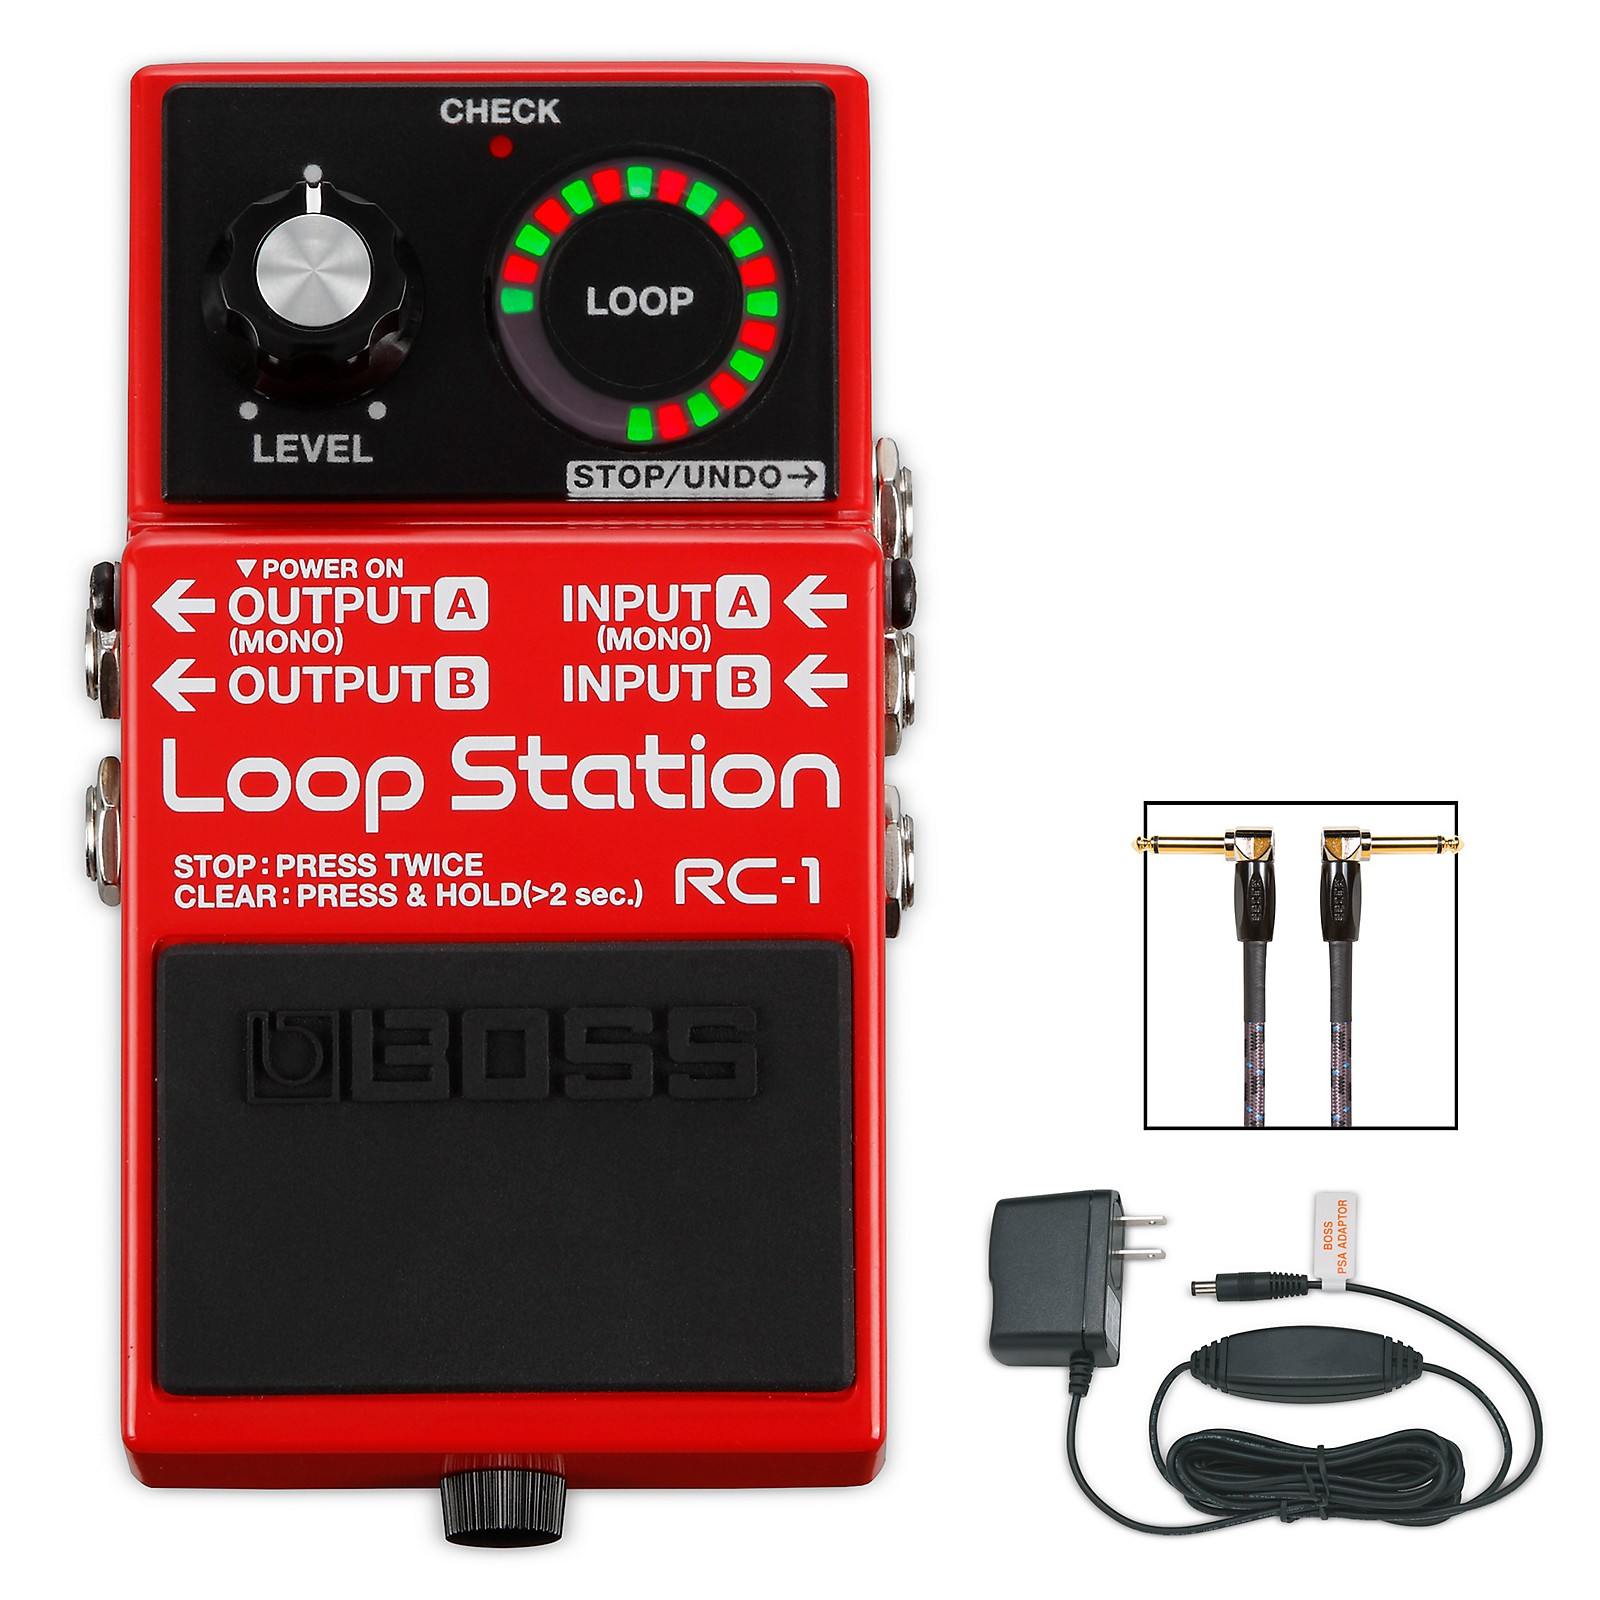 Boss RC-1 Loop Station, PSA-120S2 AC Power Adapter and 3' Instrument Cable Bundle